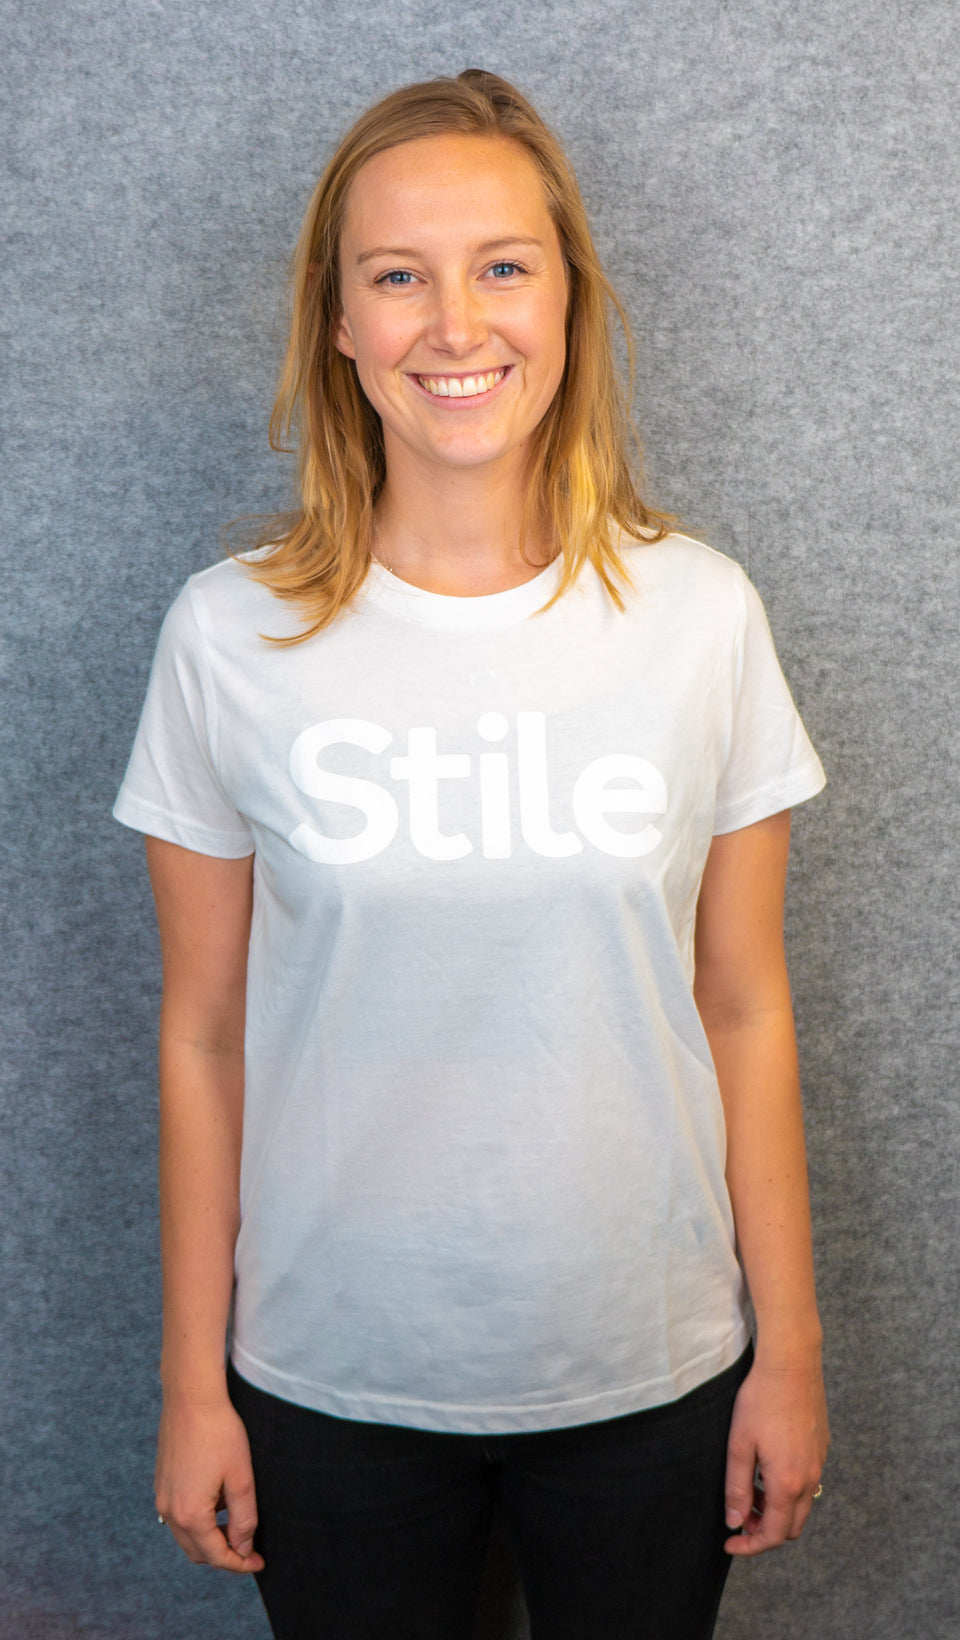 White women's Stile Tee